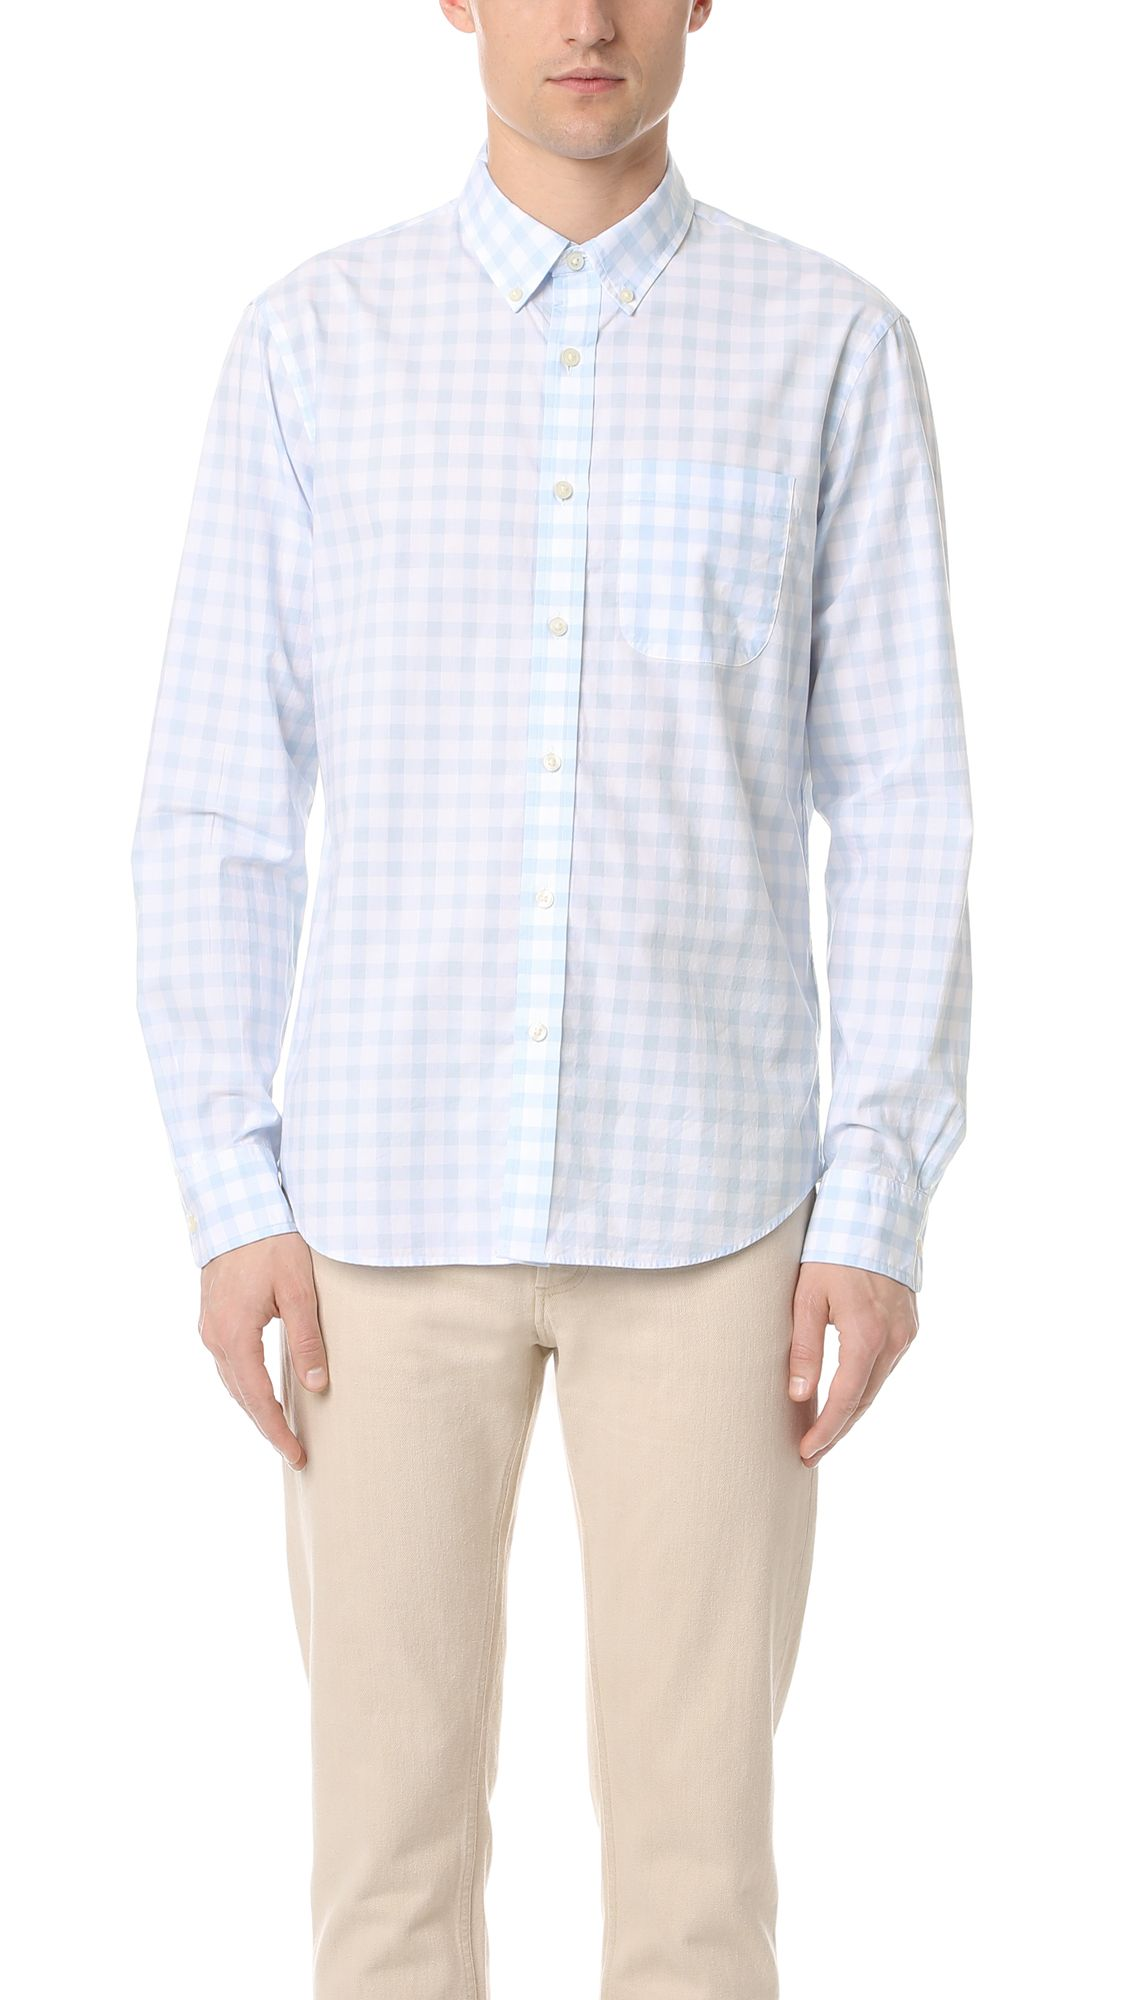 CLUB MONACO Button-down Collar Cotton Oxford Shirt - White